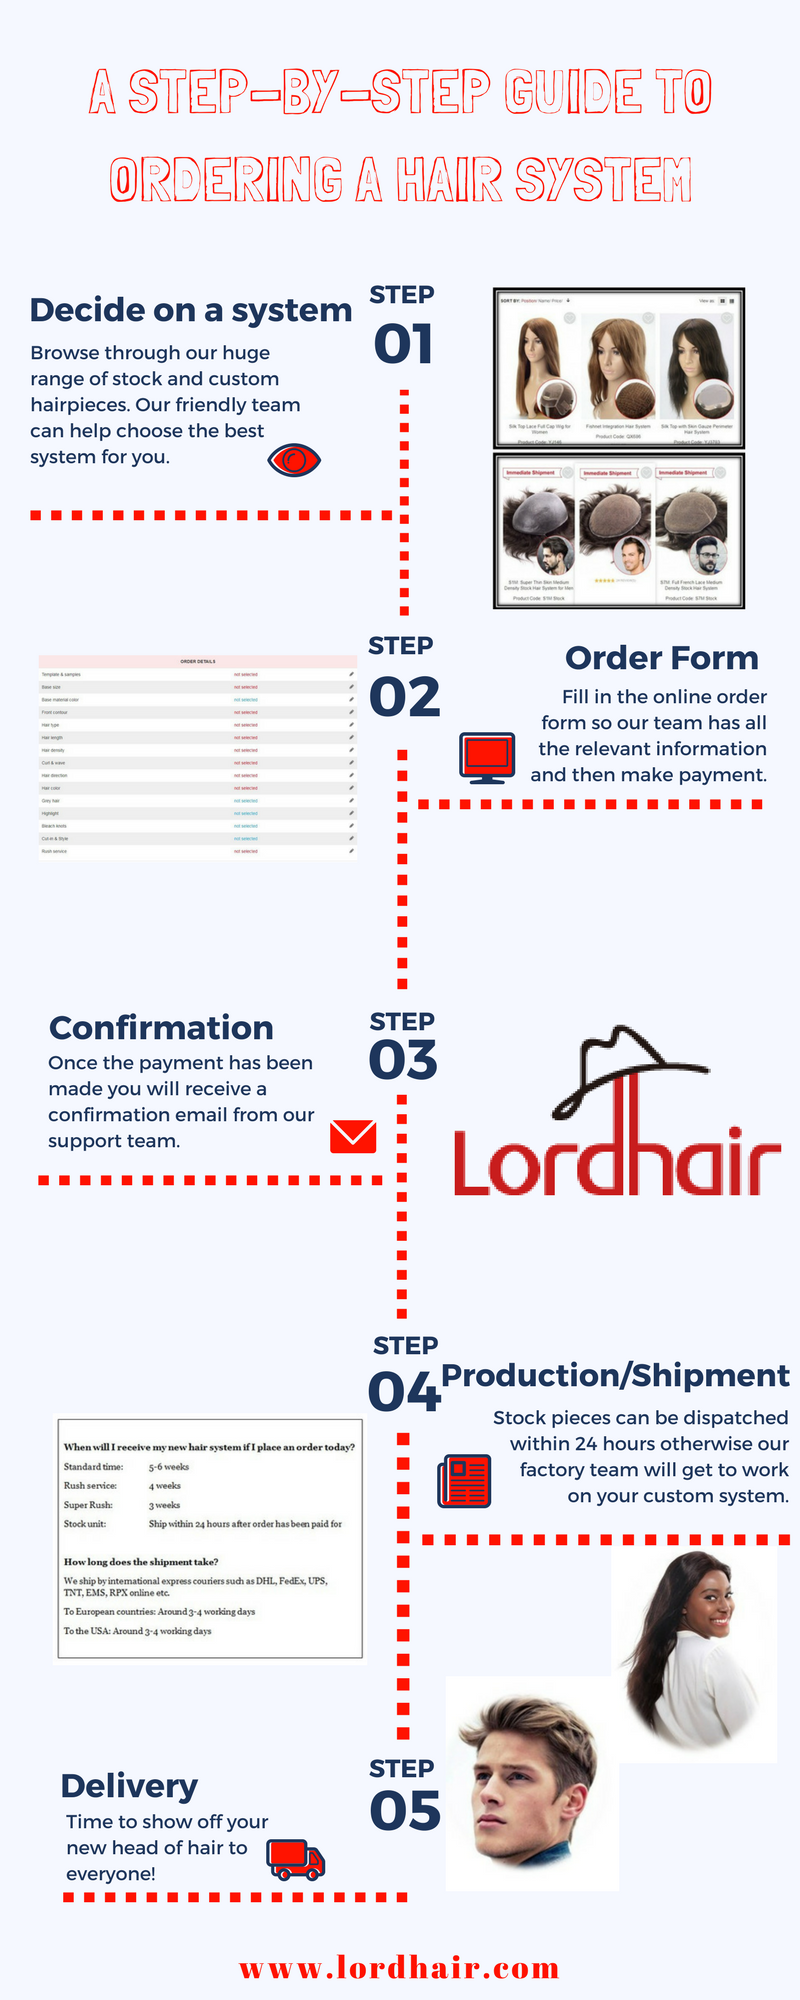 How to Order Hair System at Lordhair